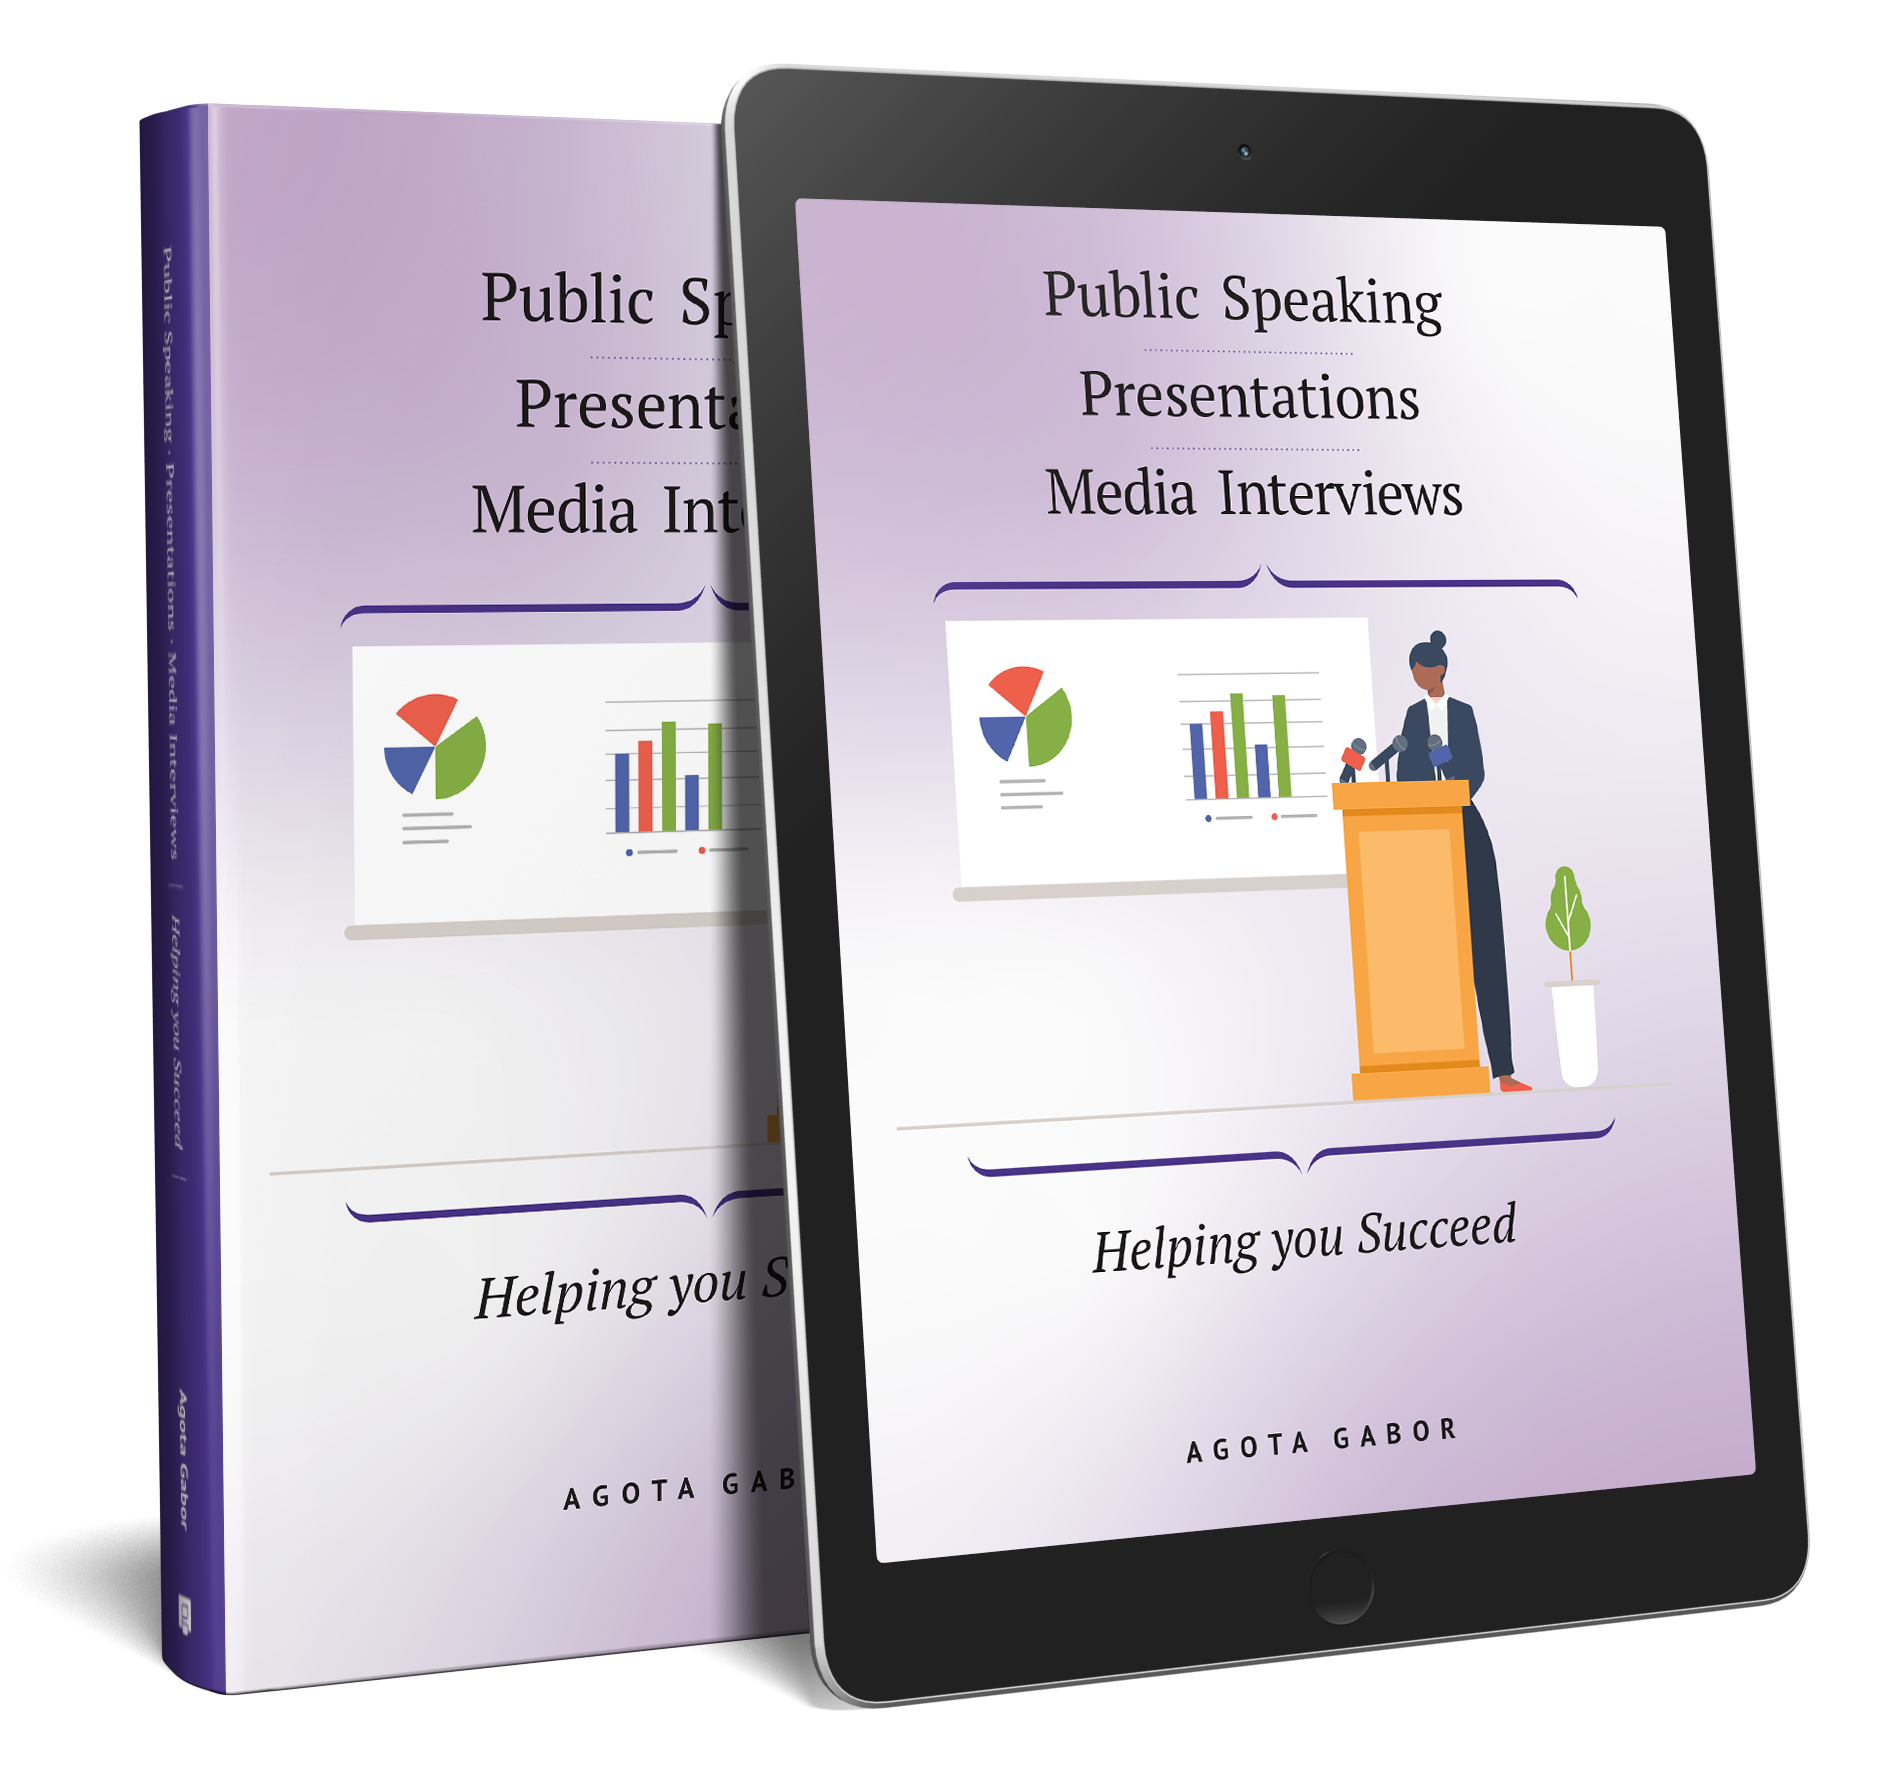 Gabor's successful Public Speaking, Presentation and Media Interview workshops have helped hundreds of executives and politicians improve their communications skills. This book can help you too.